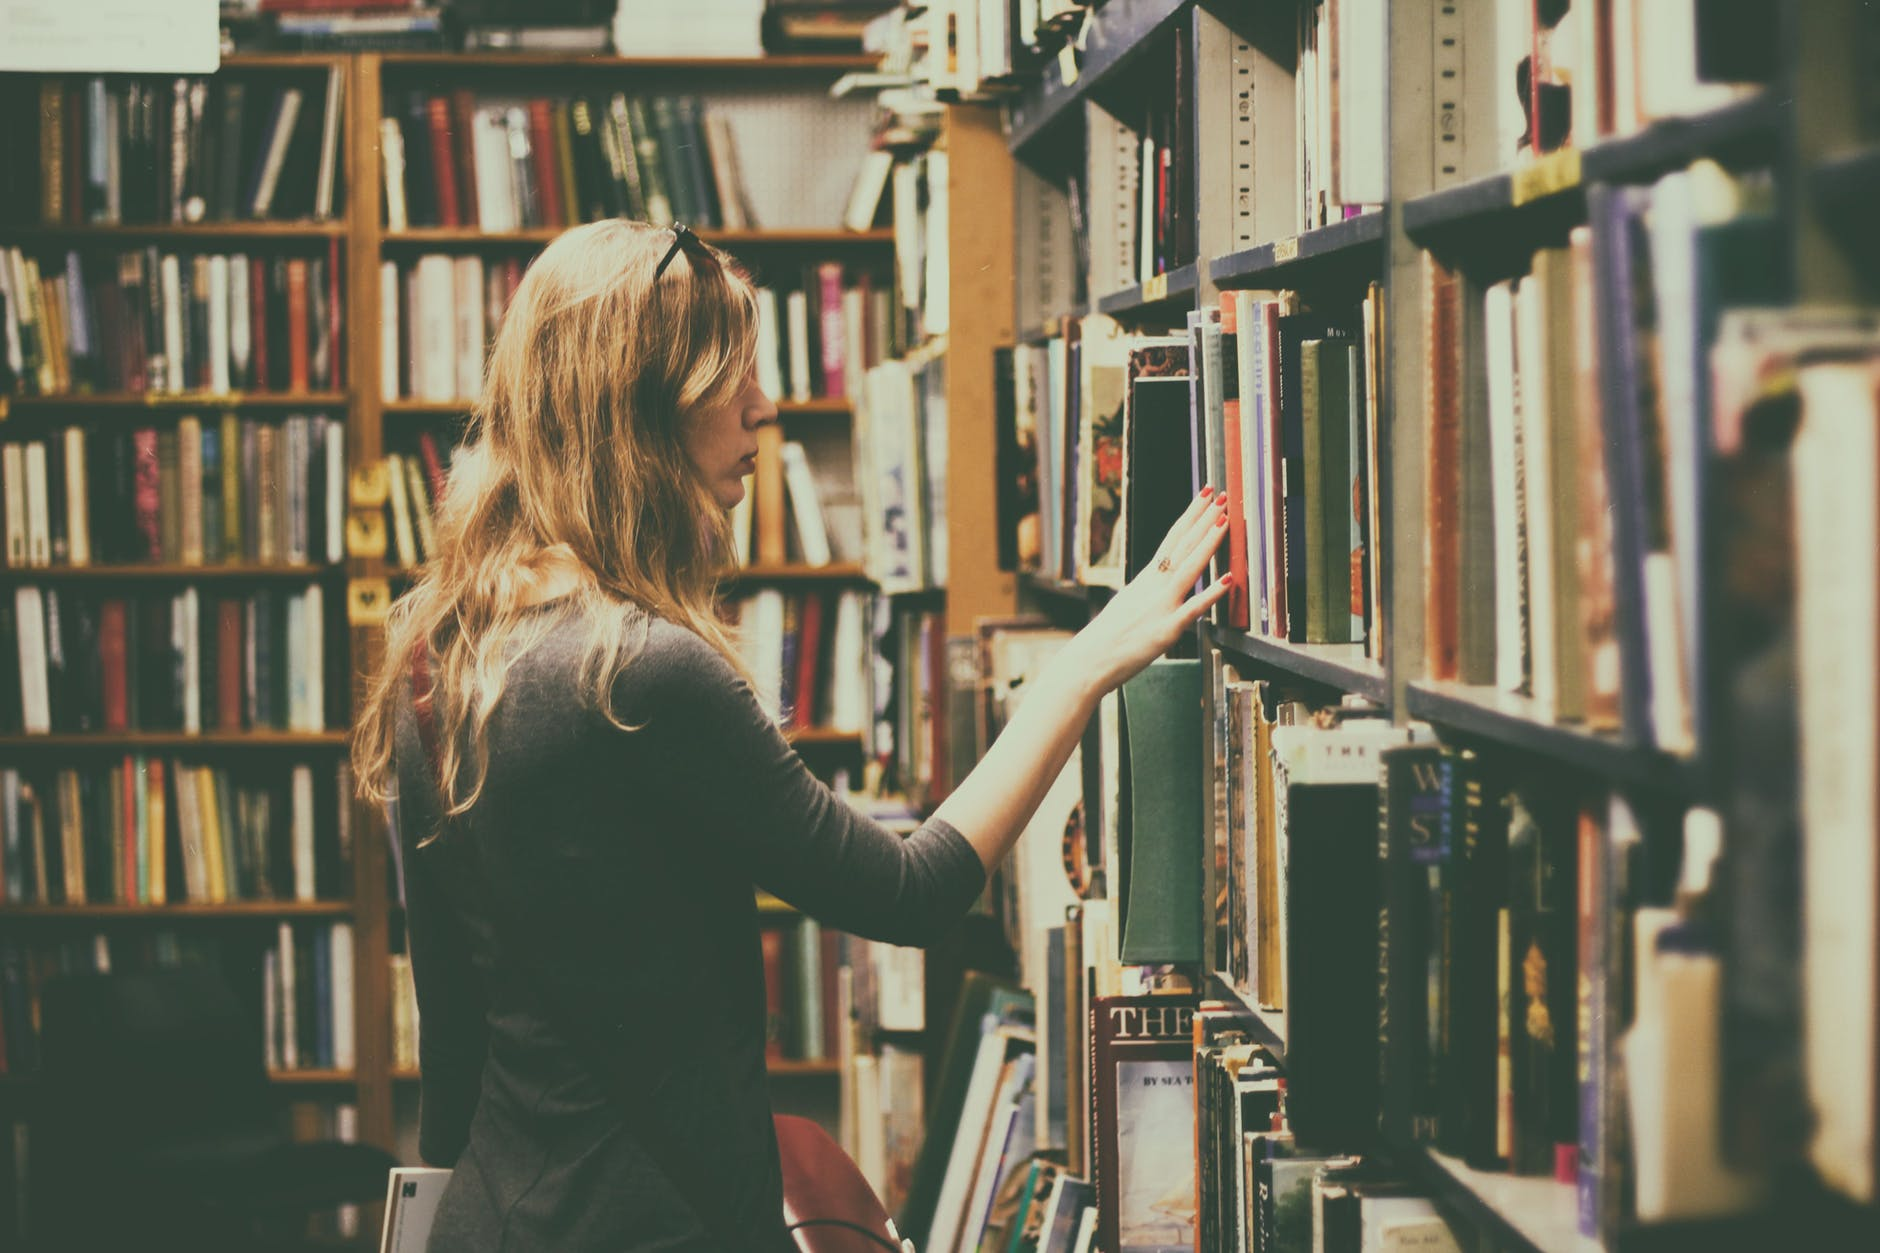 A woman looking over shelves in a book store